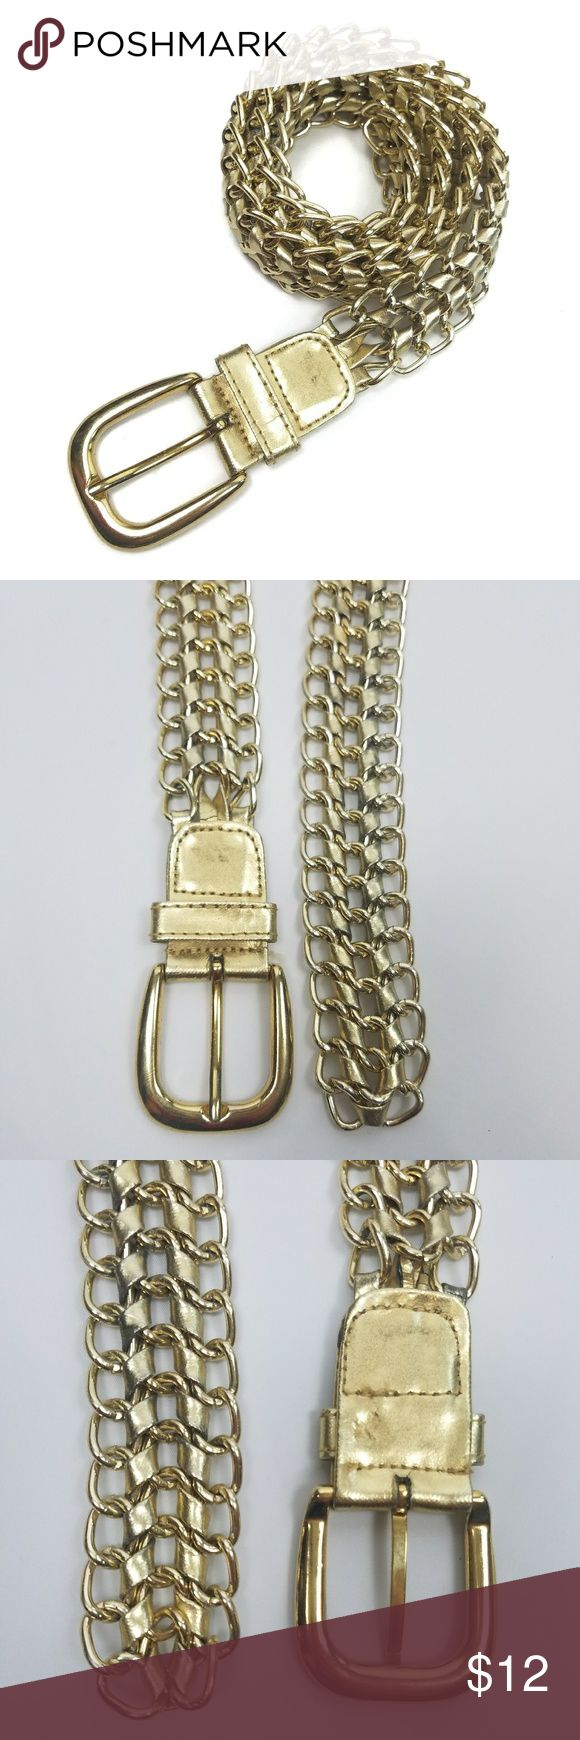 "Vintage Chain Metal Gold Tone Faux Leather Belt Vintage chain and faux leather belt. Fits up to 33"" waist with 2"" left at the end. In good vintage condition. Discoloration and cracking to the faux leather. One thread ripping out on buckle. Light wear to the metal.  Measurements are approximate. Width: 1"" Total length: 35"" (not counting buckle) Unbranded Accessories Belts"